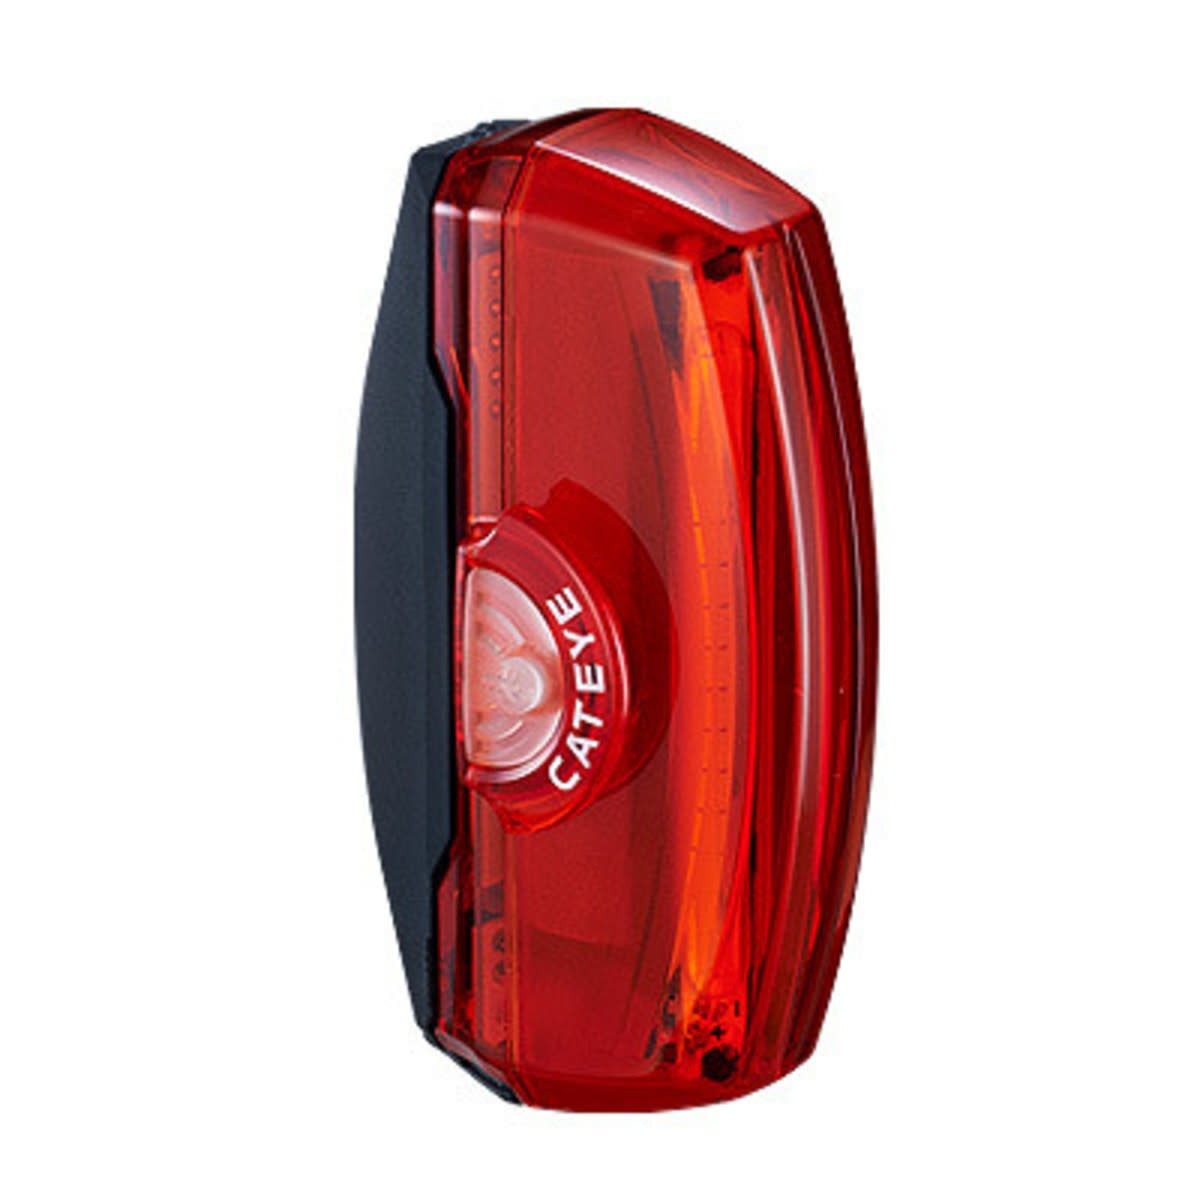 CatEye Cateye Rapid X3 Rear Light LM TL-LD720-R 150LM